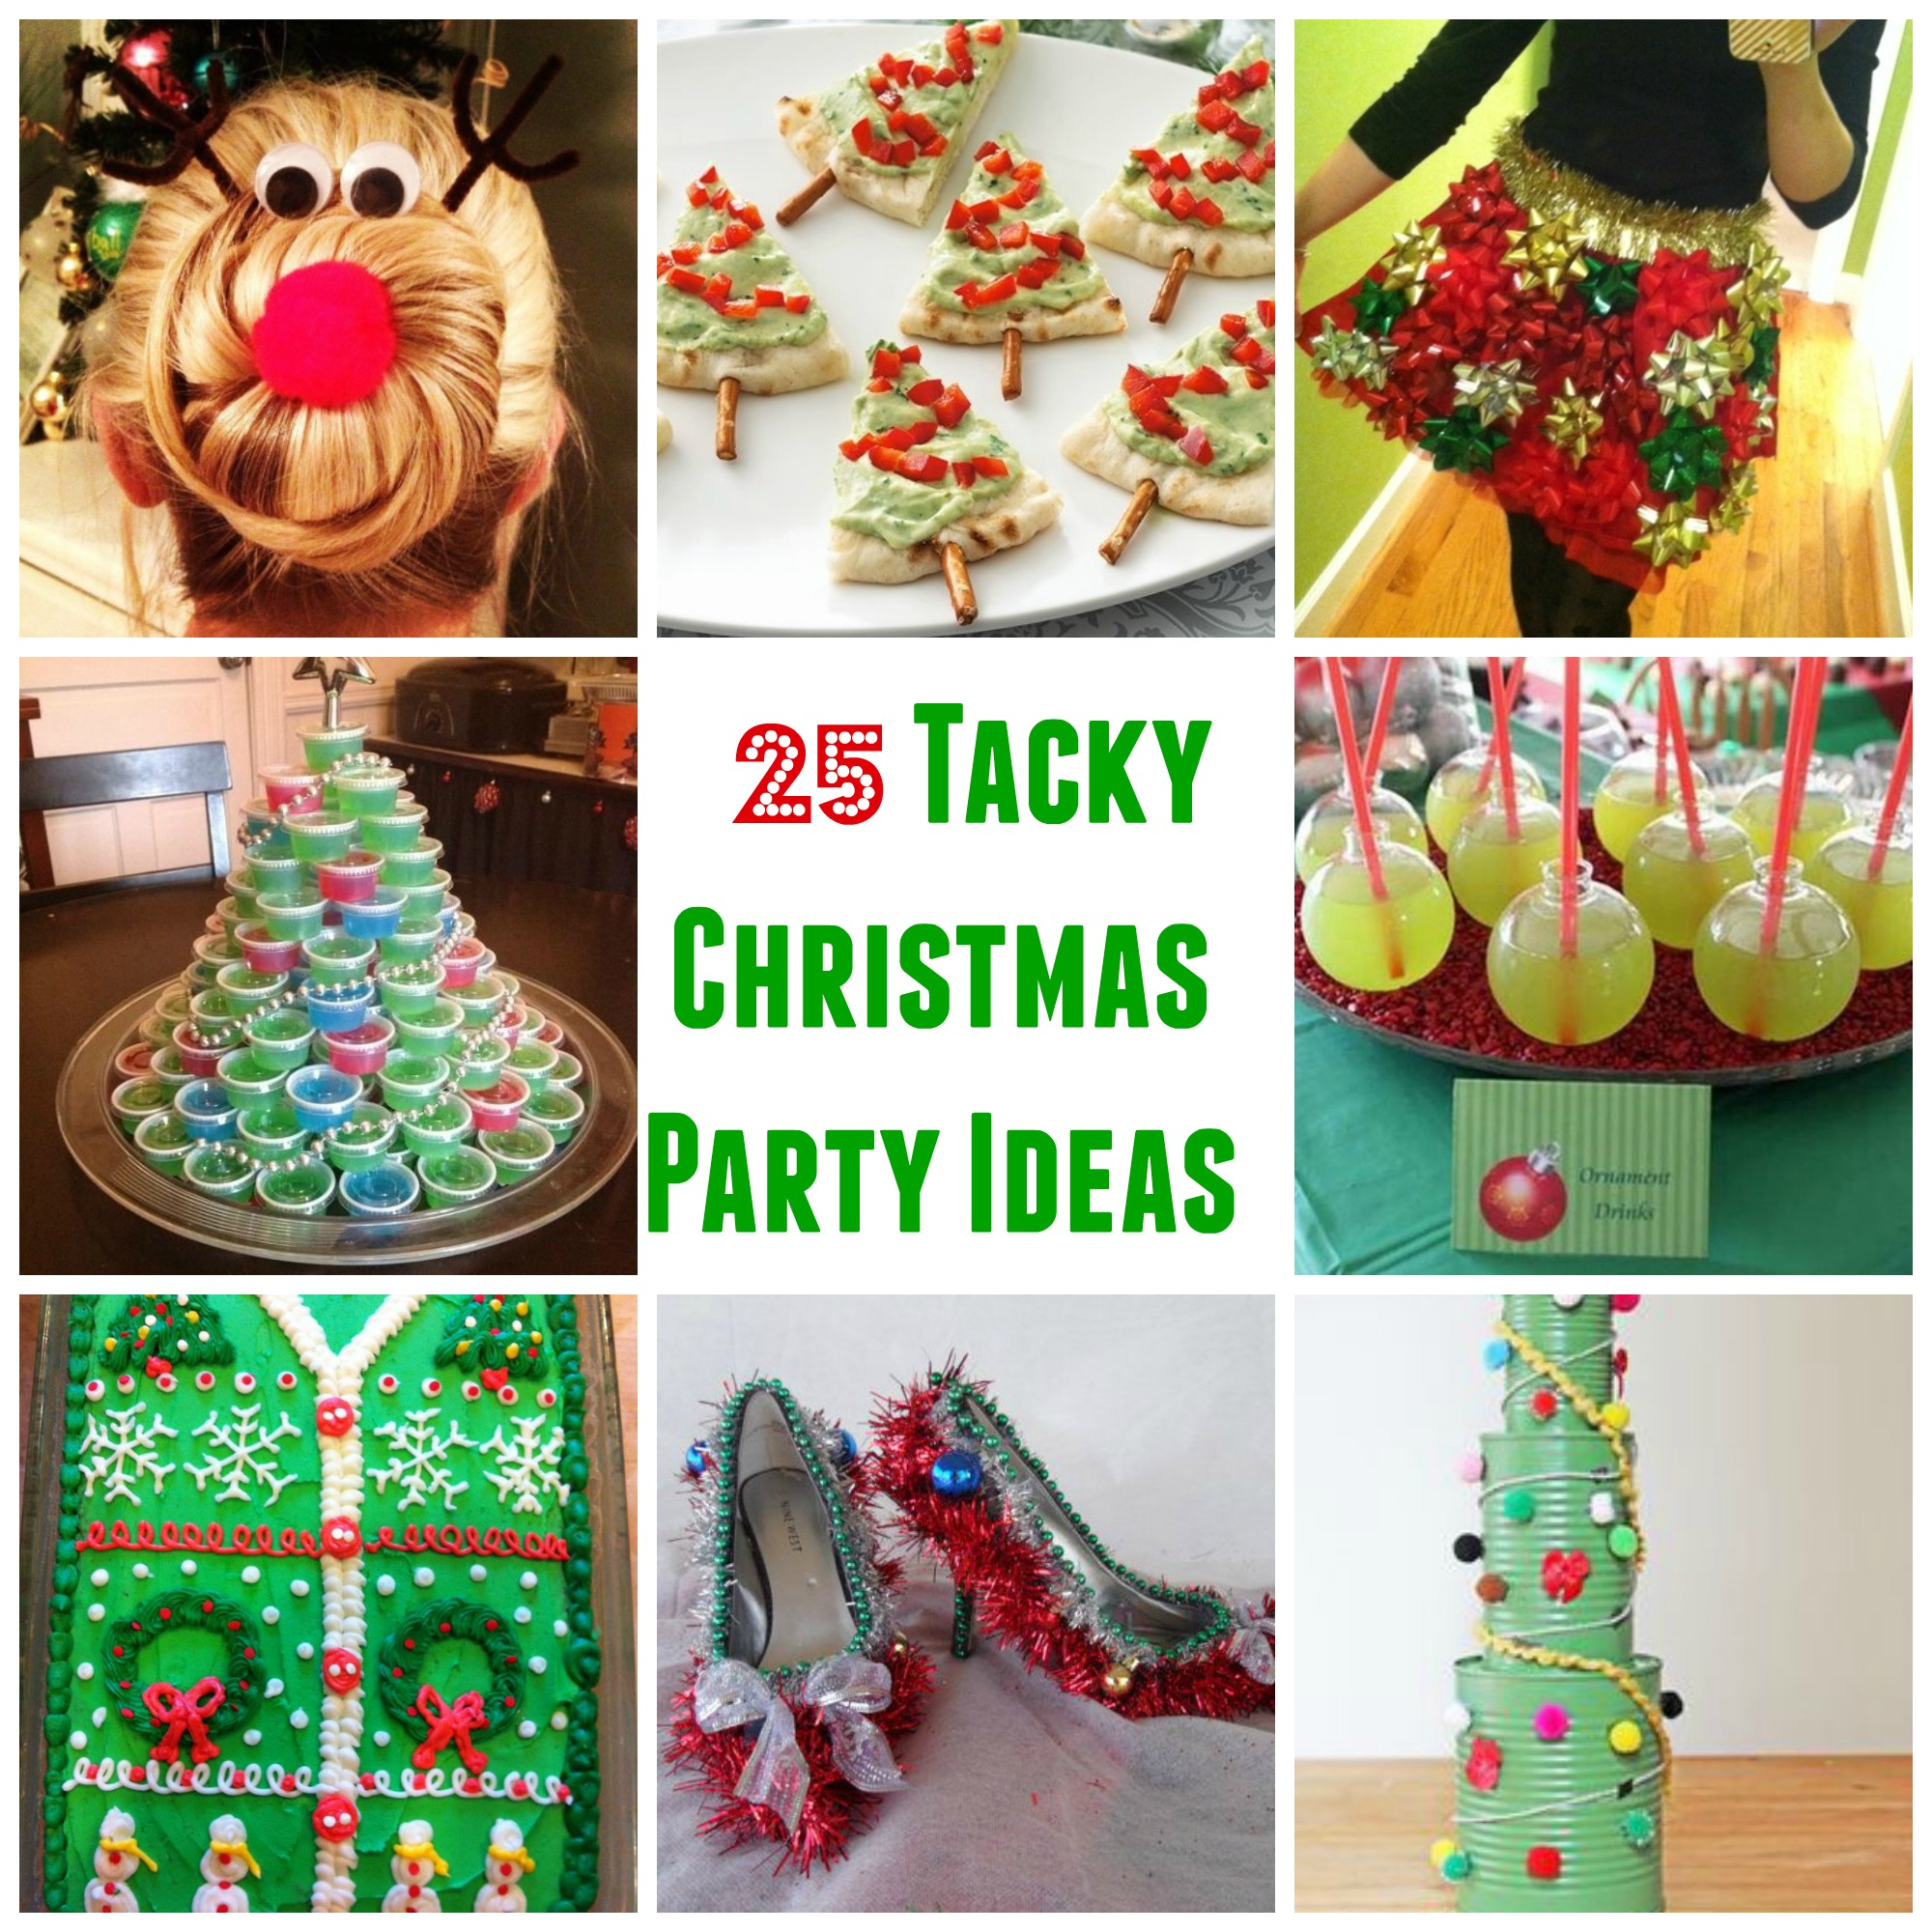 Christmas Party Ideas.25 Genius Tacky Christmas Party Ideas Sarah Scoop